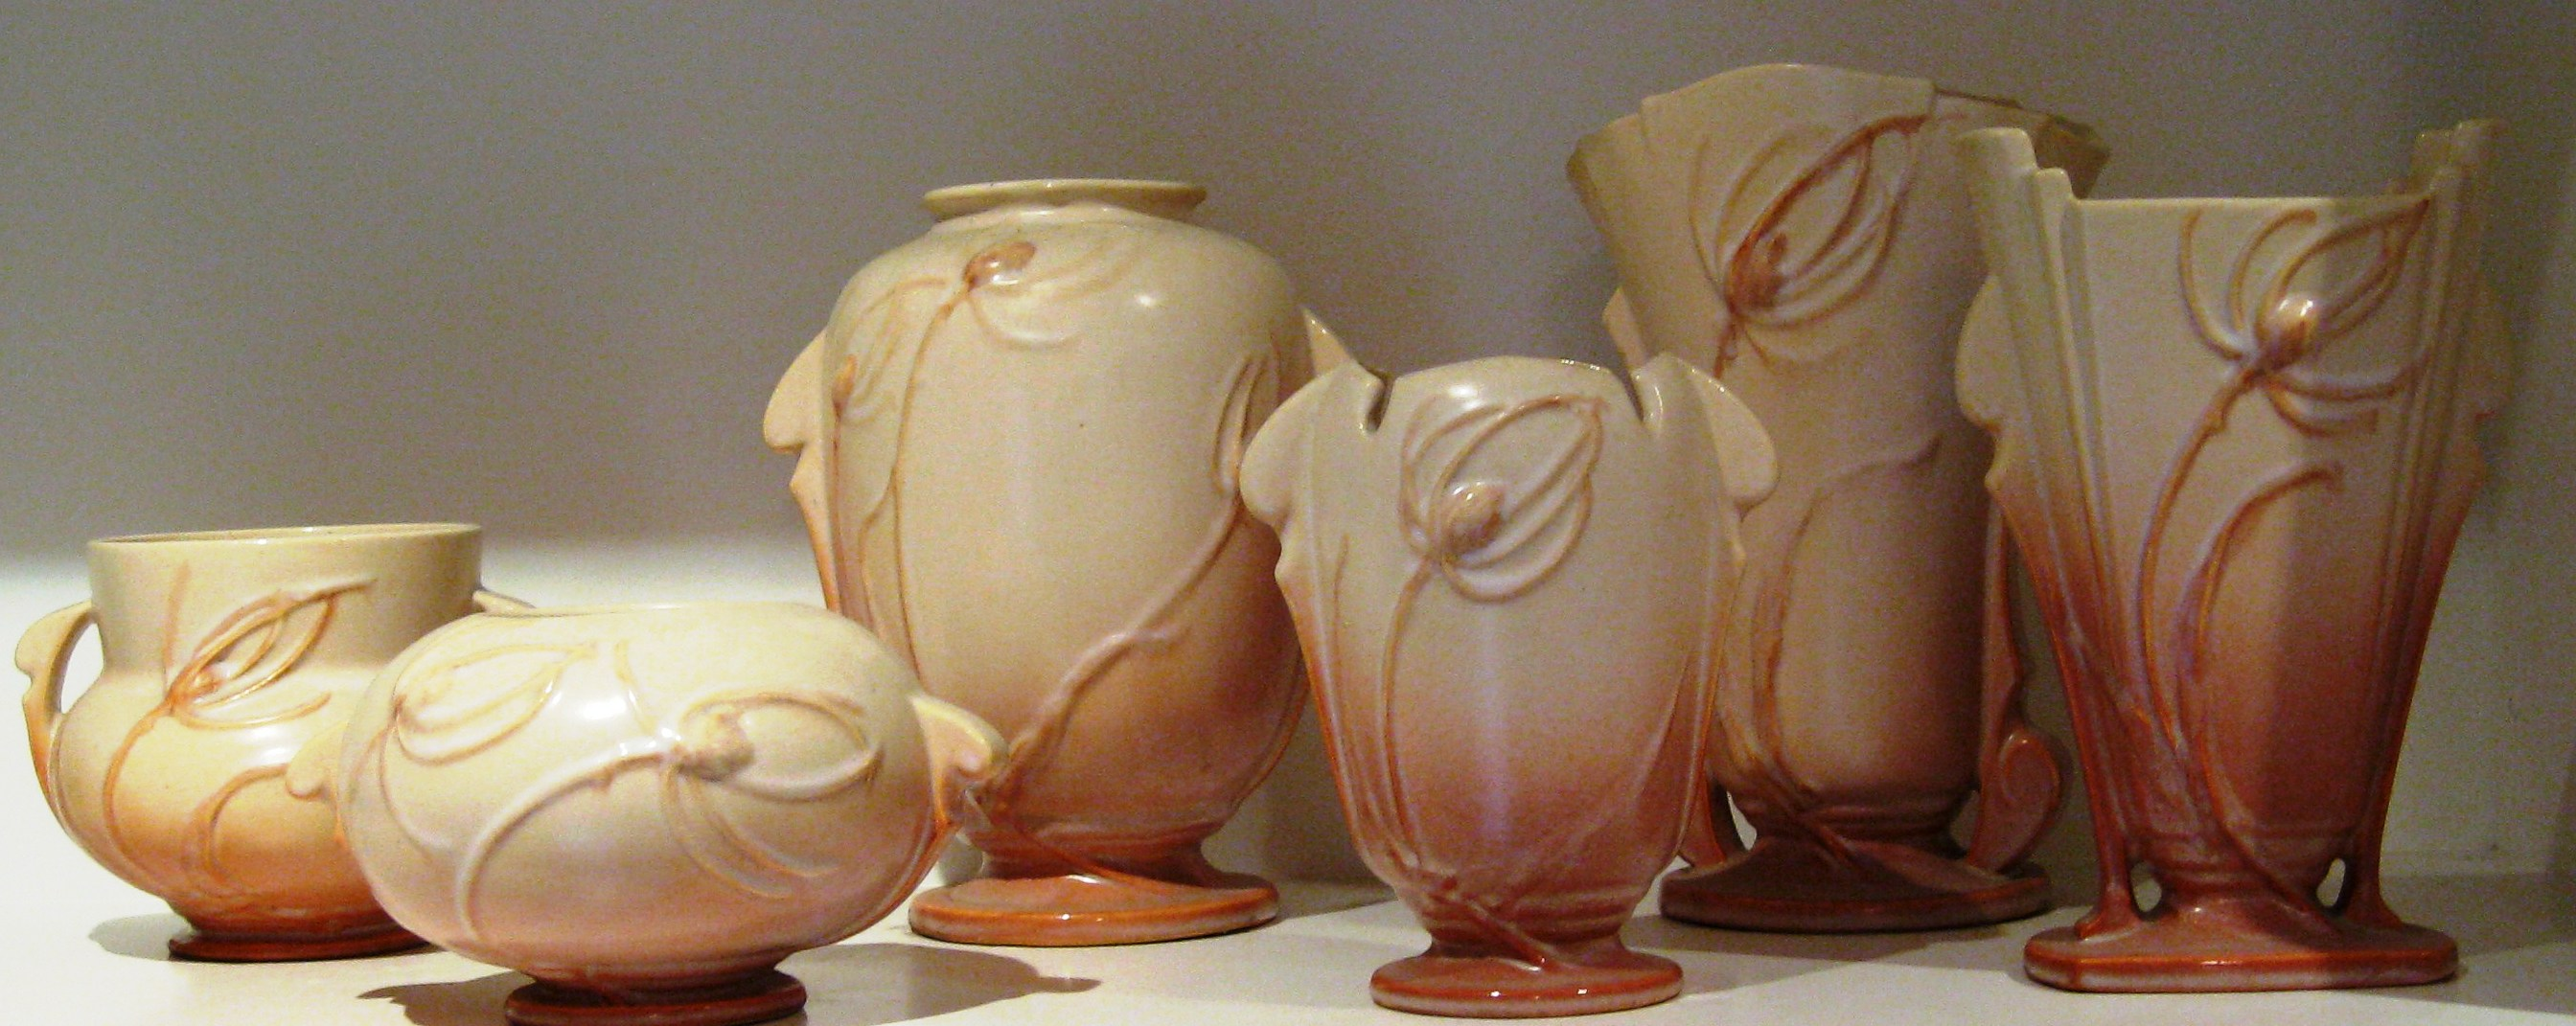 Mccoy fever art pottery on pinterest mccoy pottery for Pottery patterns